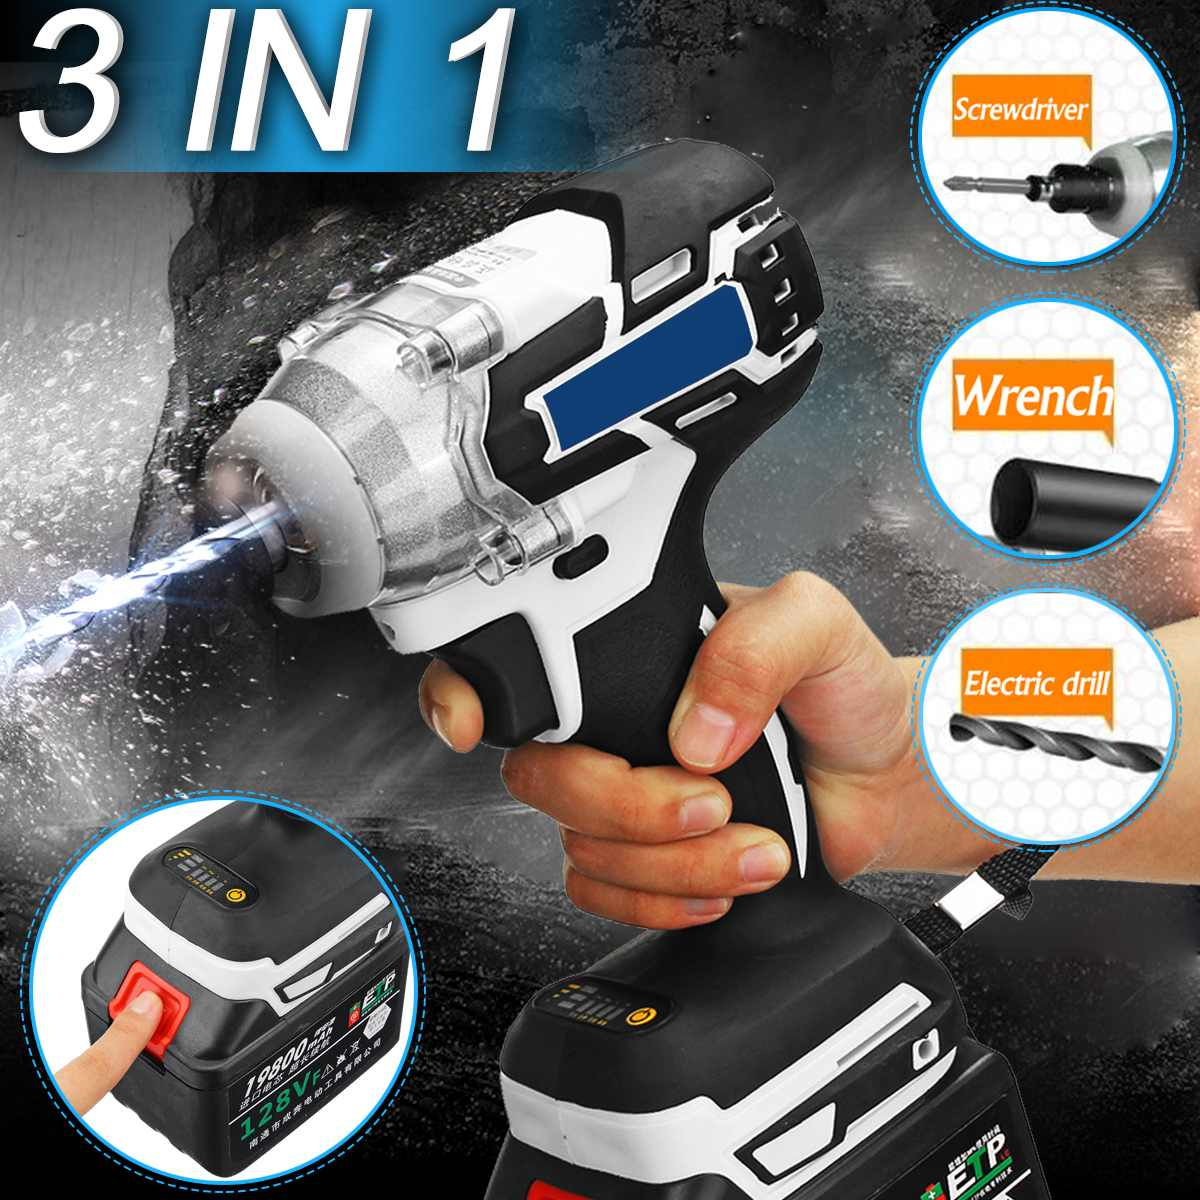 3 IN 1110-240V 1280W <font><b>Electric</b></font> <font><b>Cordless</b></font> Brushless Hammer <font><b>Drill</b></font> <font><b>Screwdriver</b></font> 10000mAh <font><b>Impact</b></font> <font><b>Drill</b></font> Power Tools Adjustable 240-520NM image